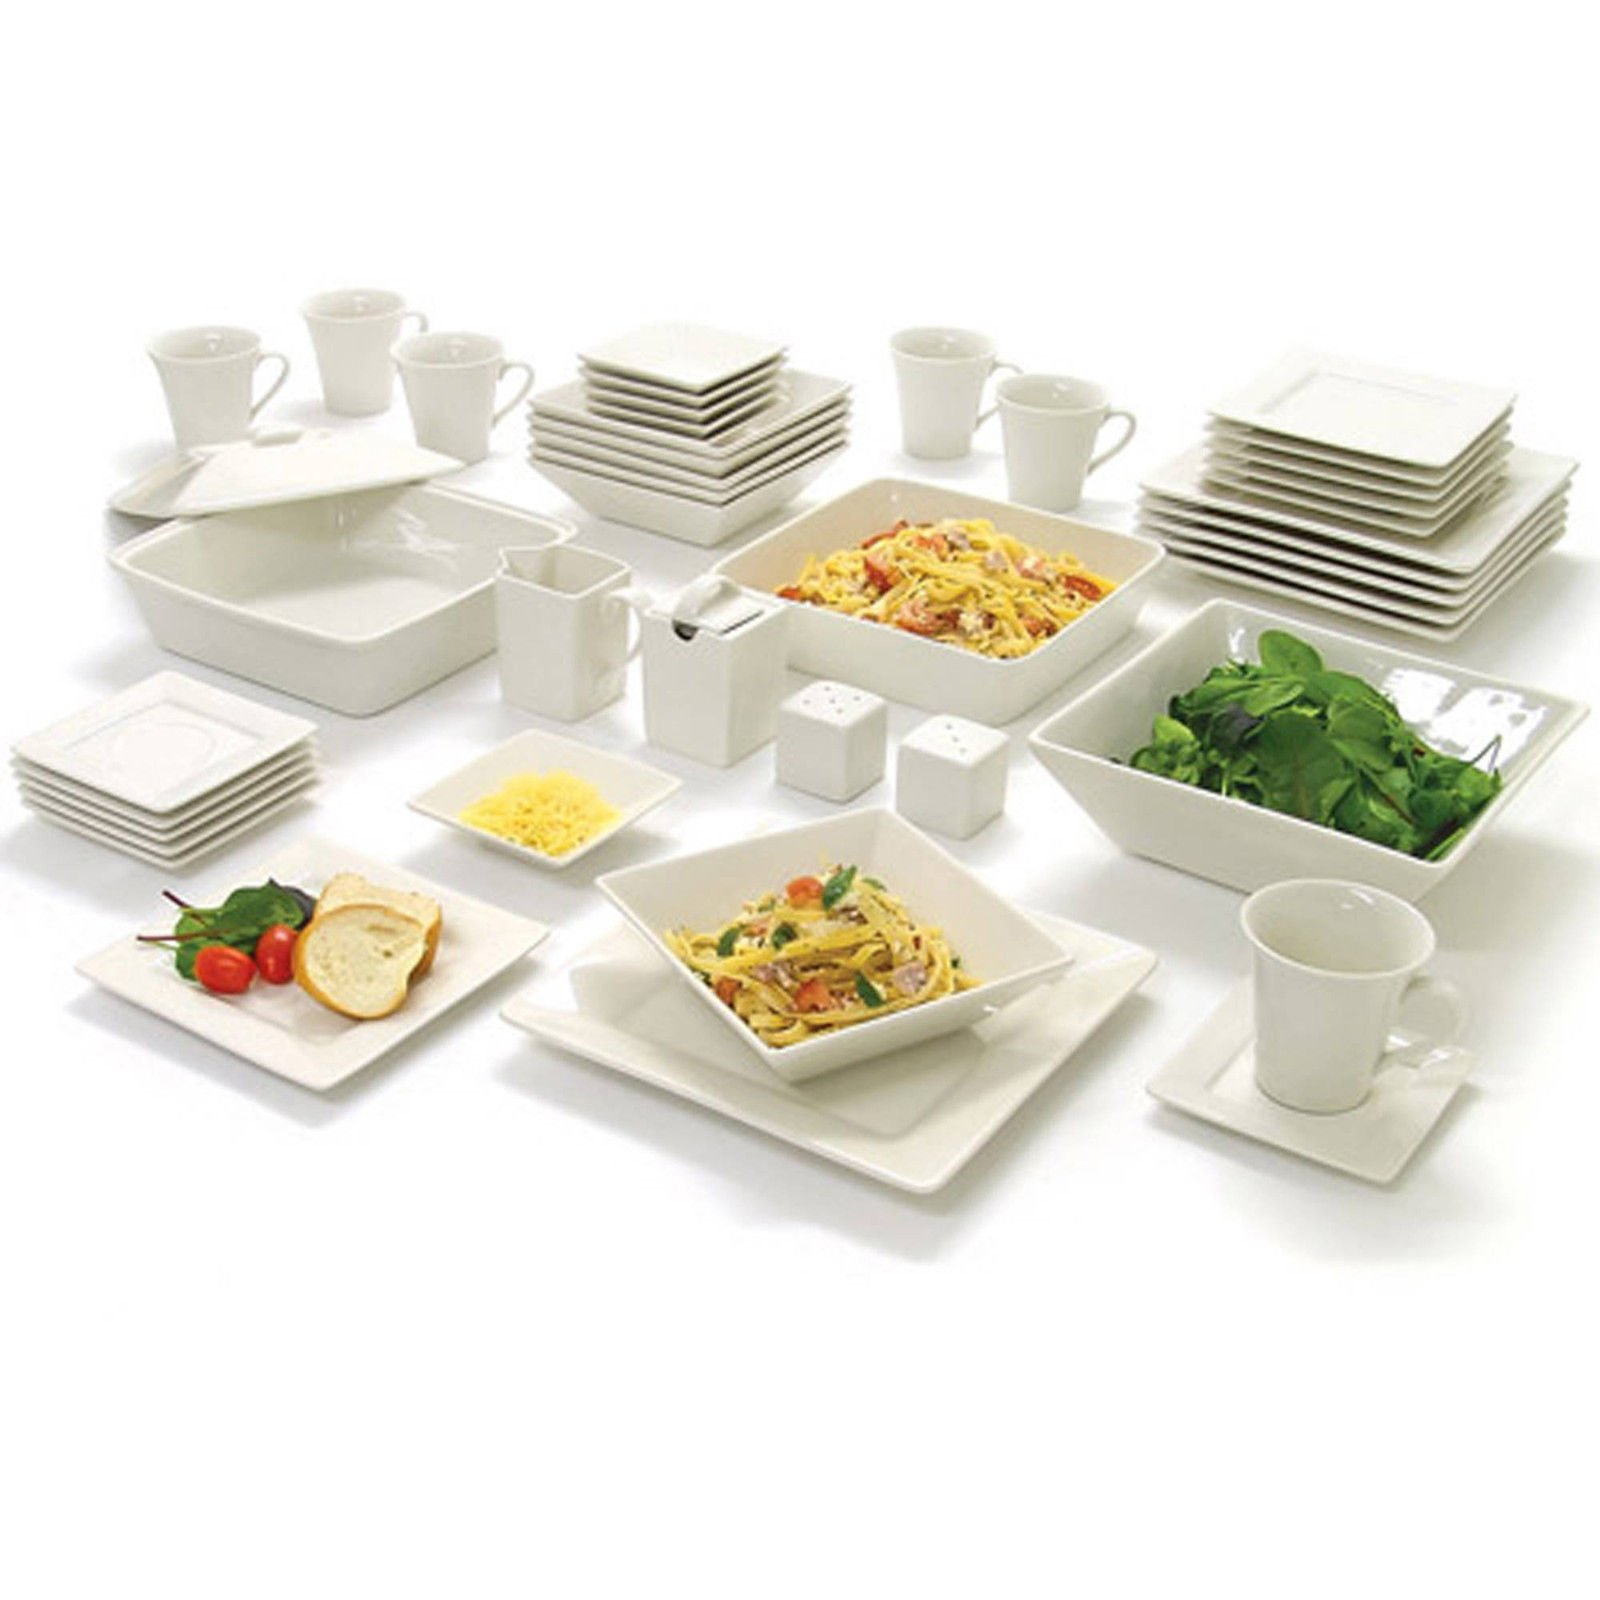 45 Piece White Dinnerware Set Square Banquet Plates Dishes Bowls Kitchen Dinner by Love+Grace (Image #1)